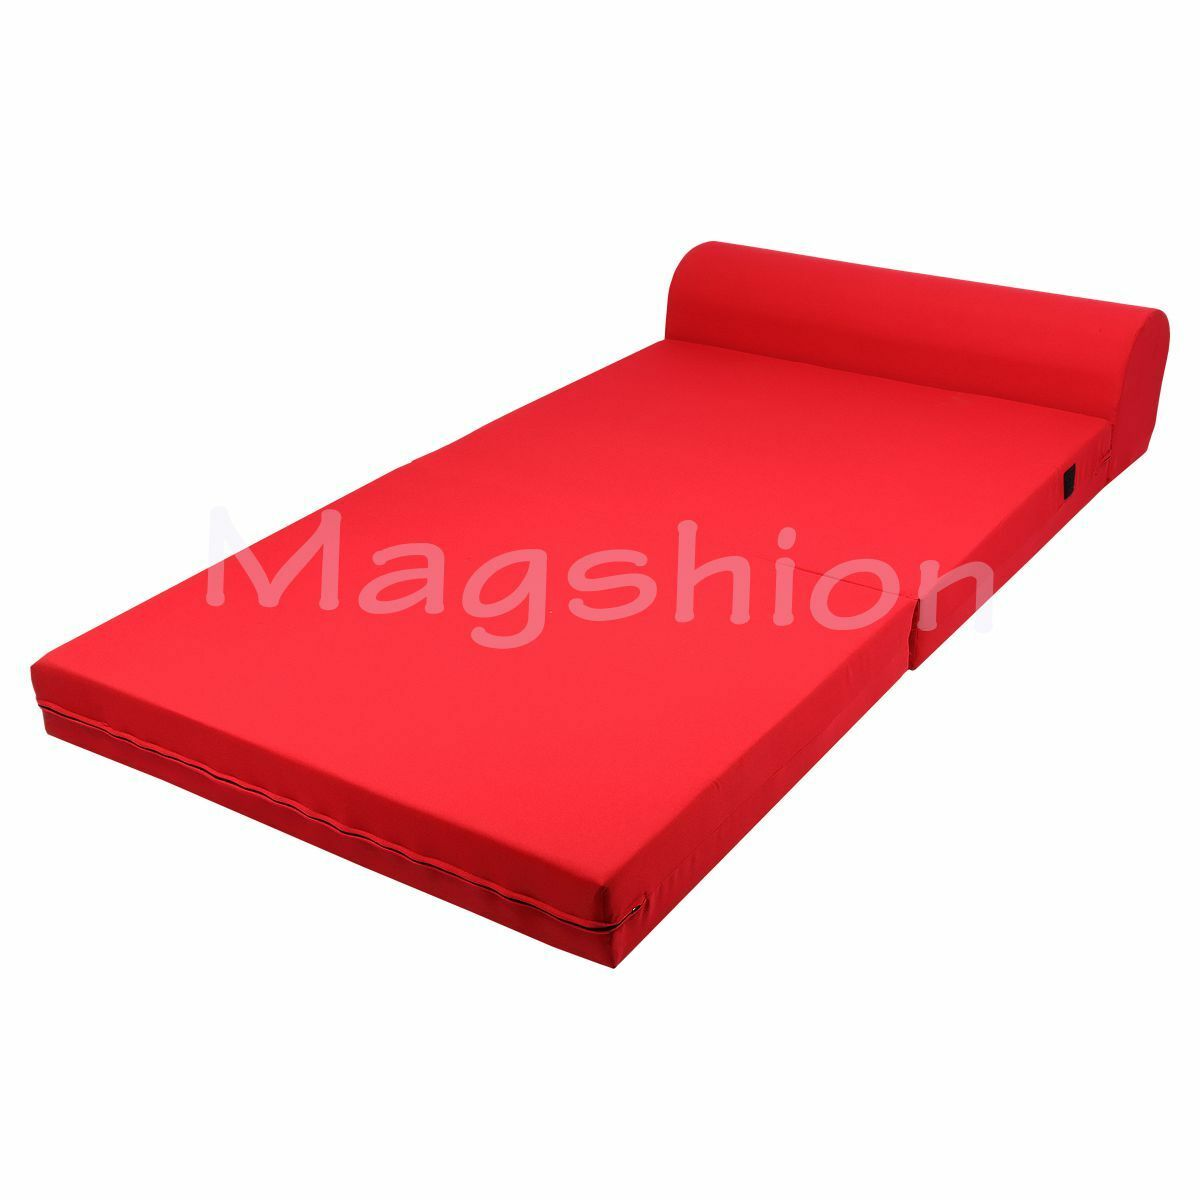 Sleeper Chair Folding Foam Bed/Mattress/Floor/Ottoman Seat Single, Twin,  Full